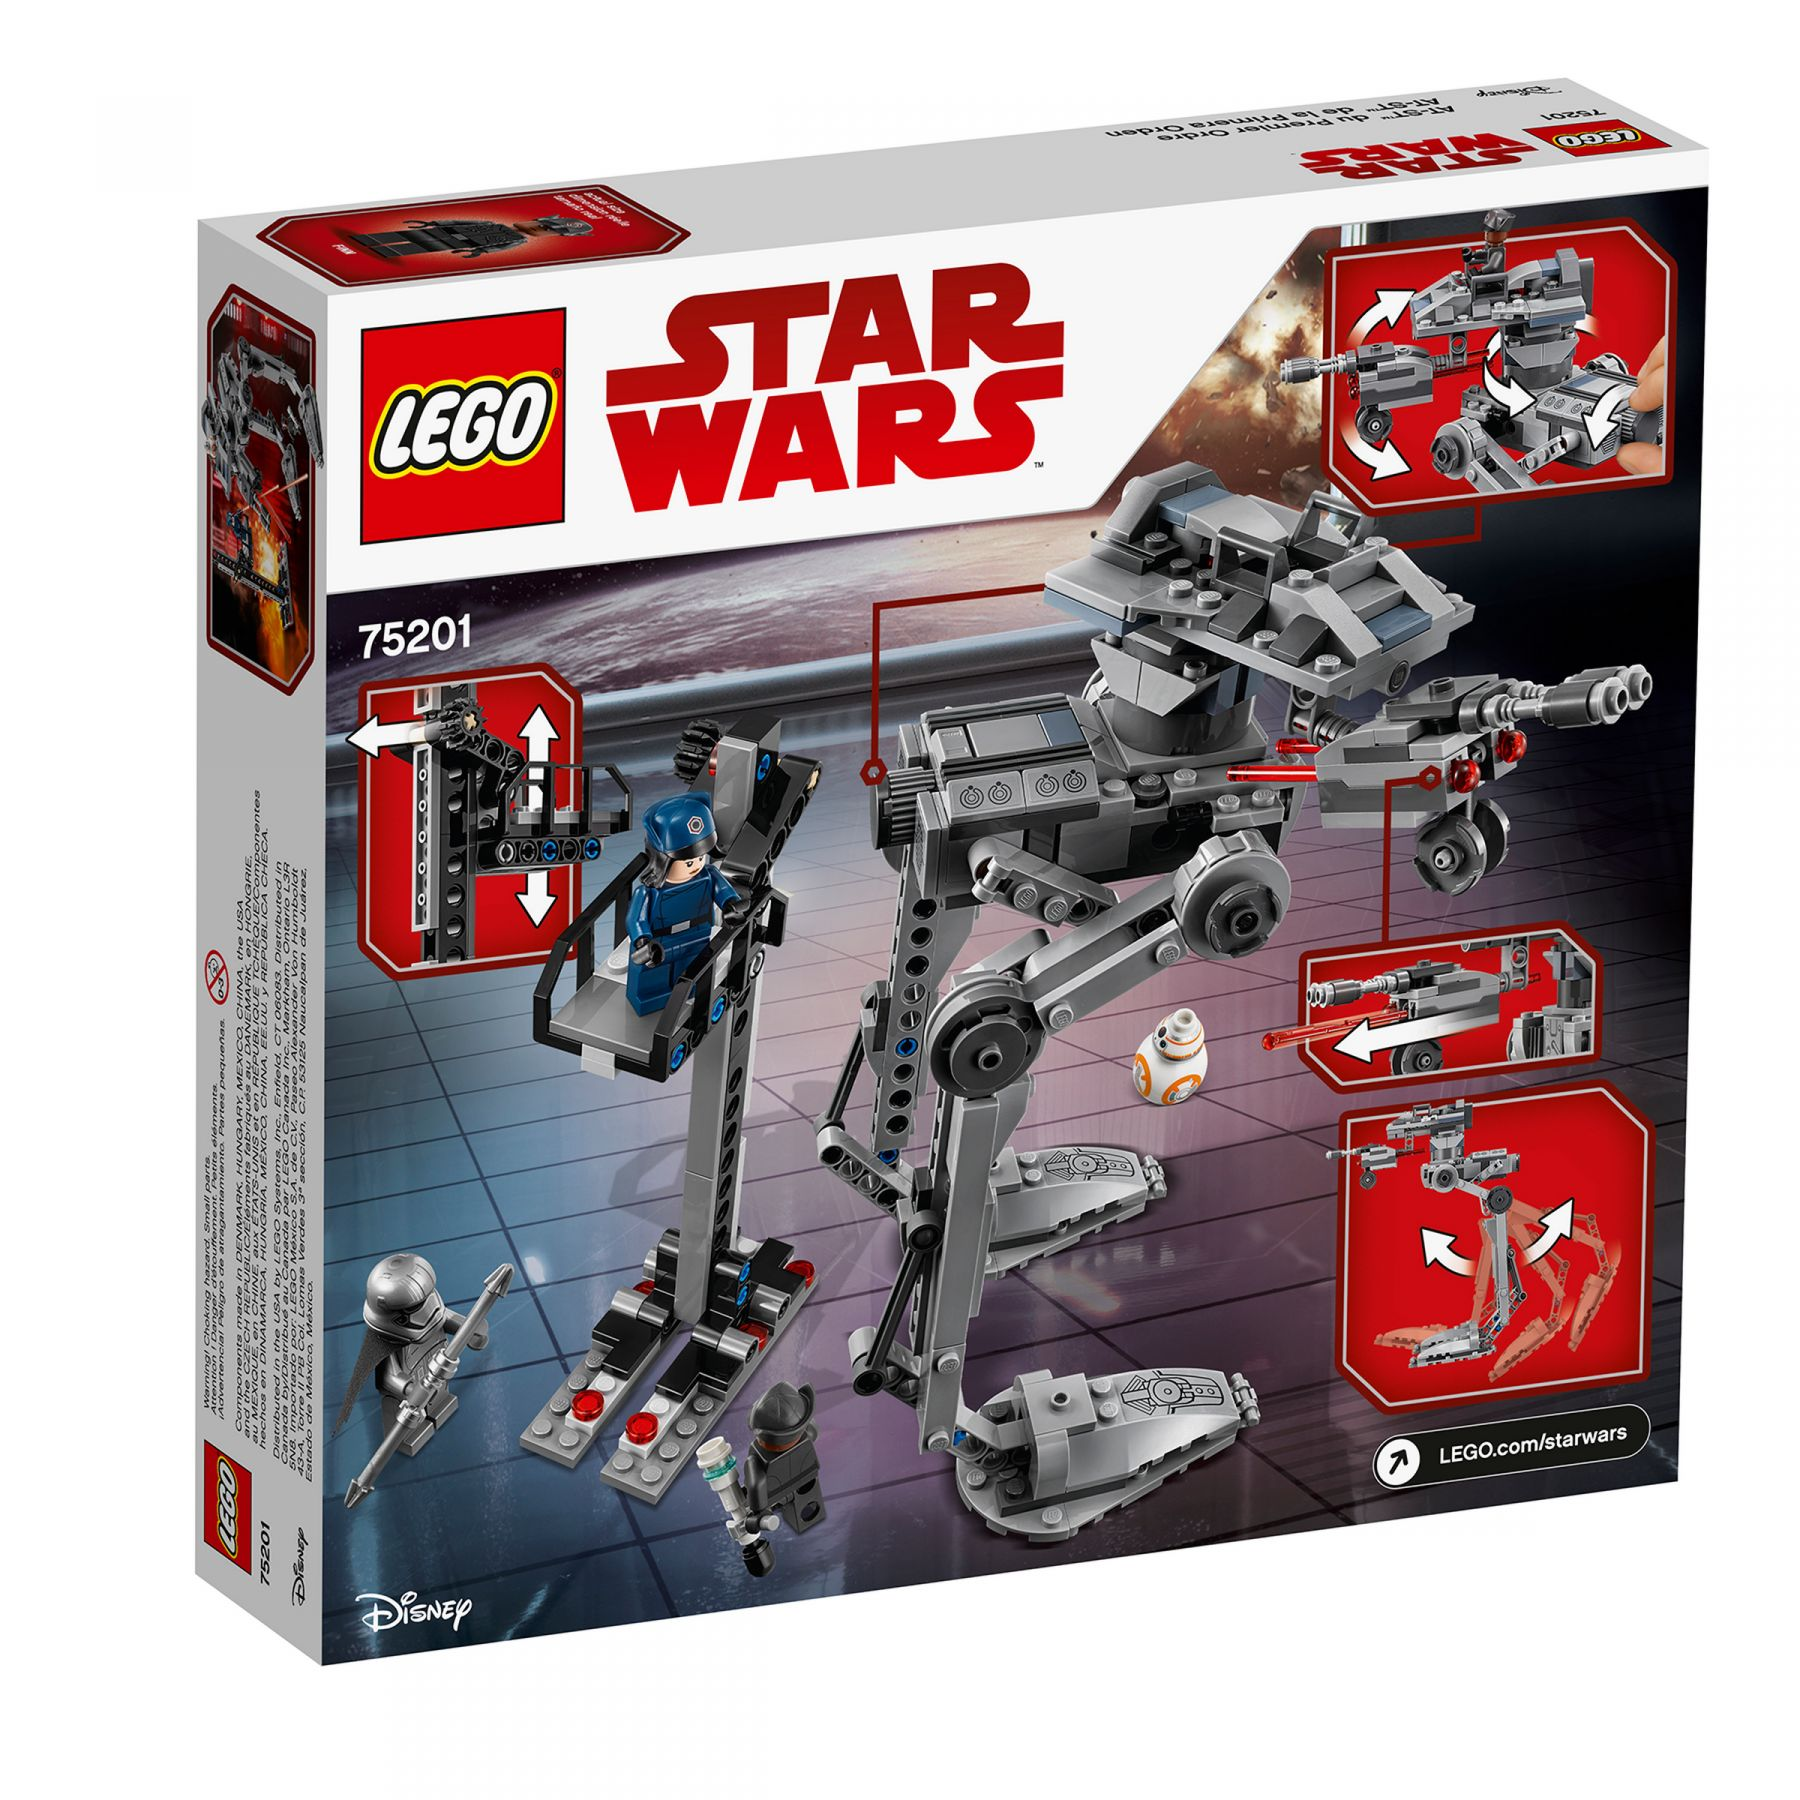 LEGO Star Wars 75201 First Order AT-ST™ LEGO_75201_alt7.jpg